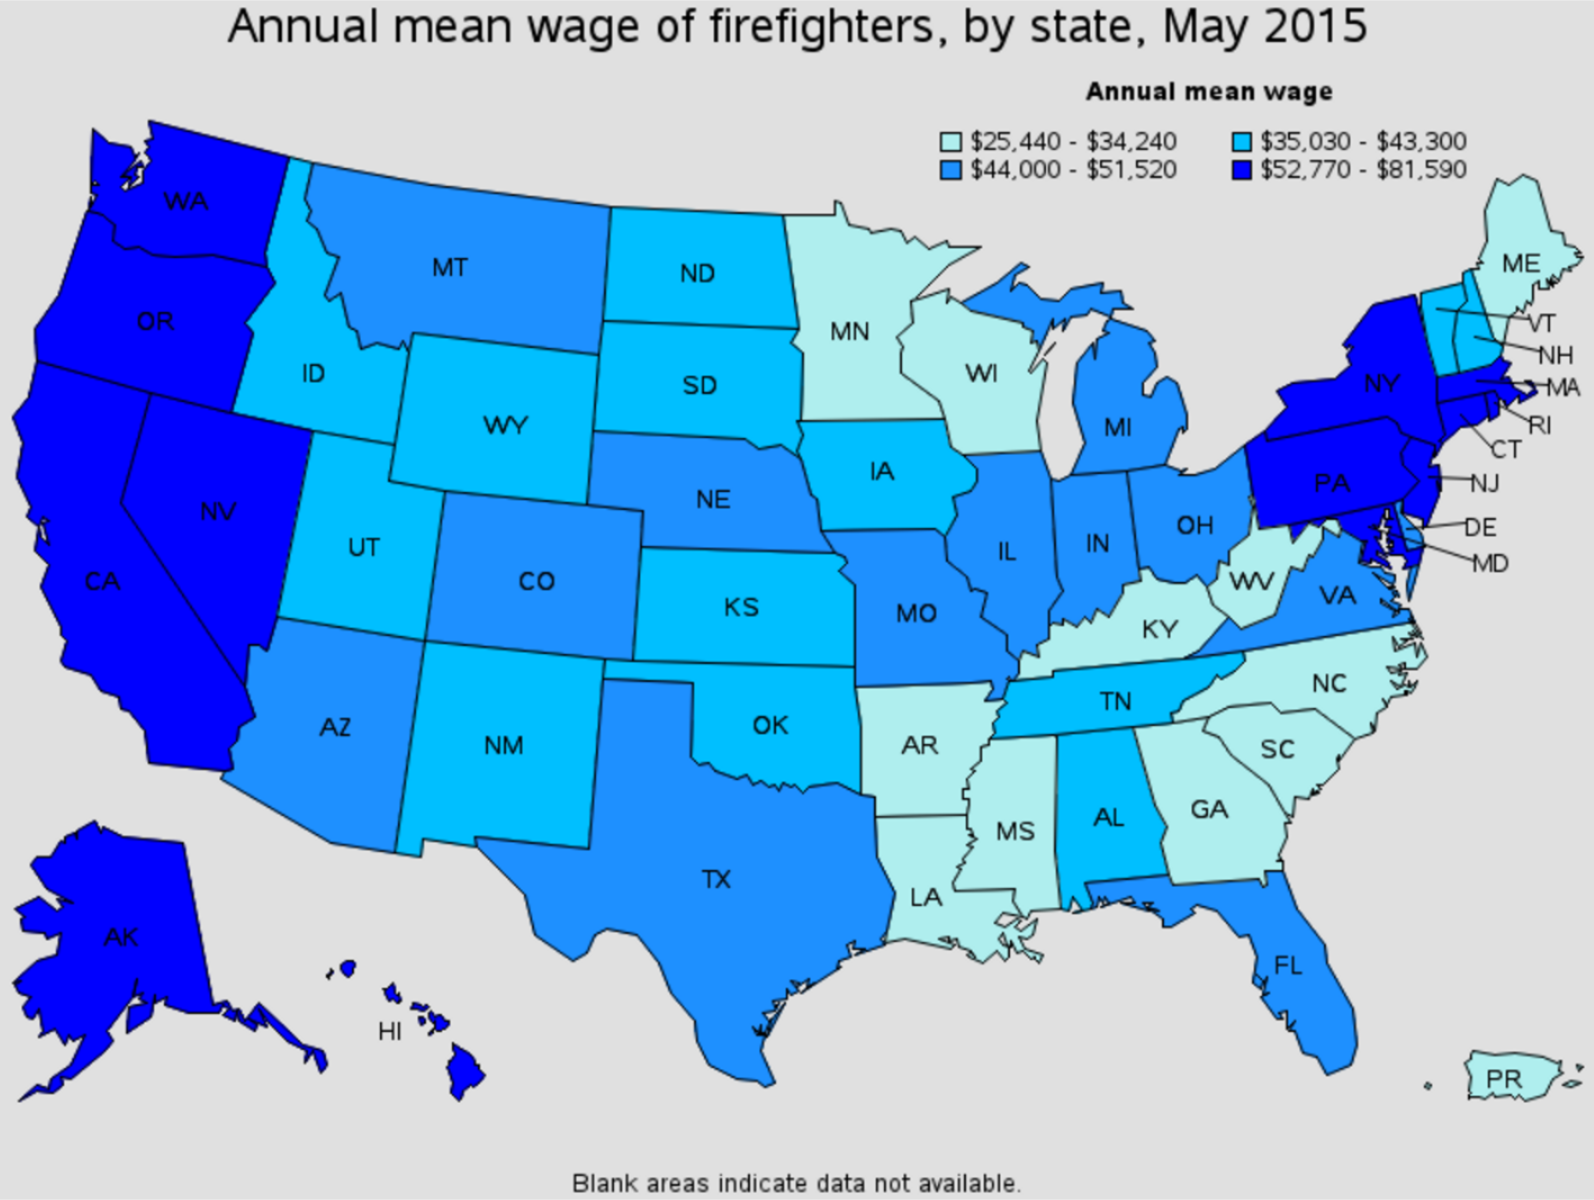 firefighter average salary by state Norwalk California